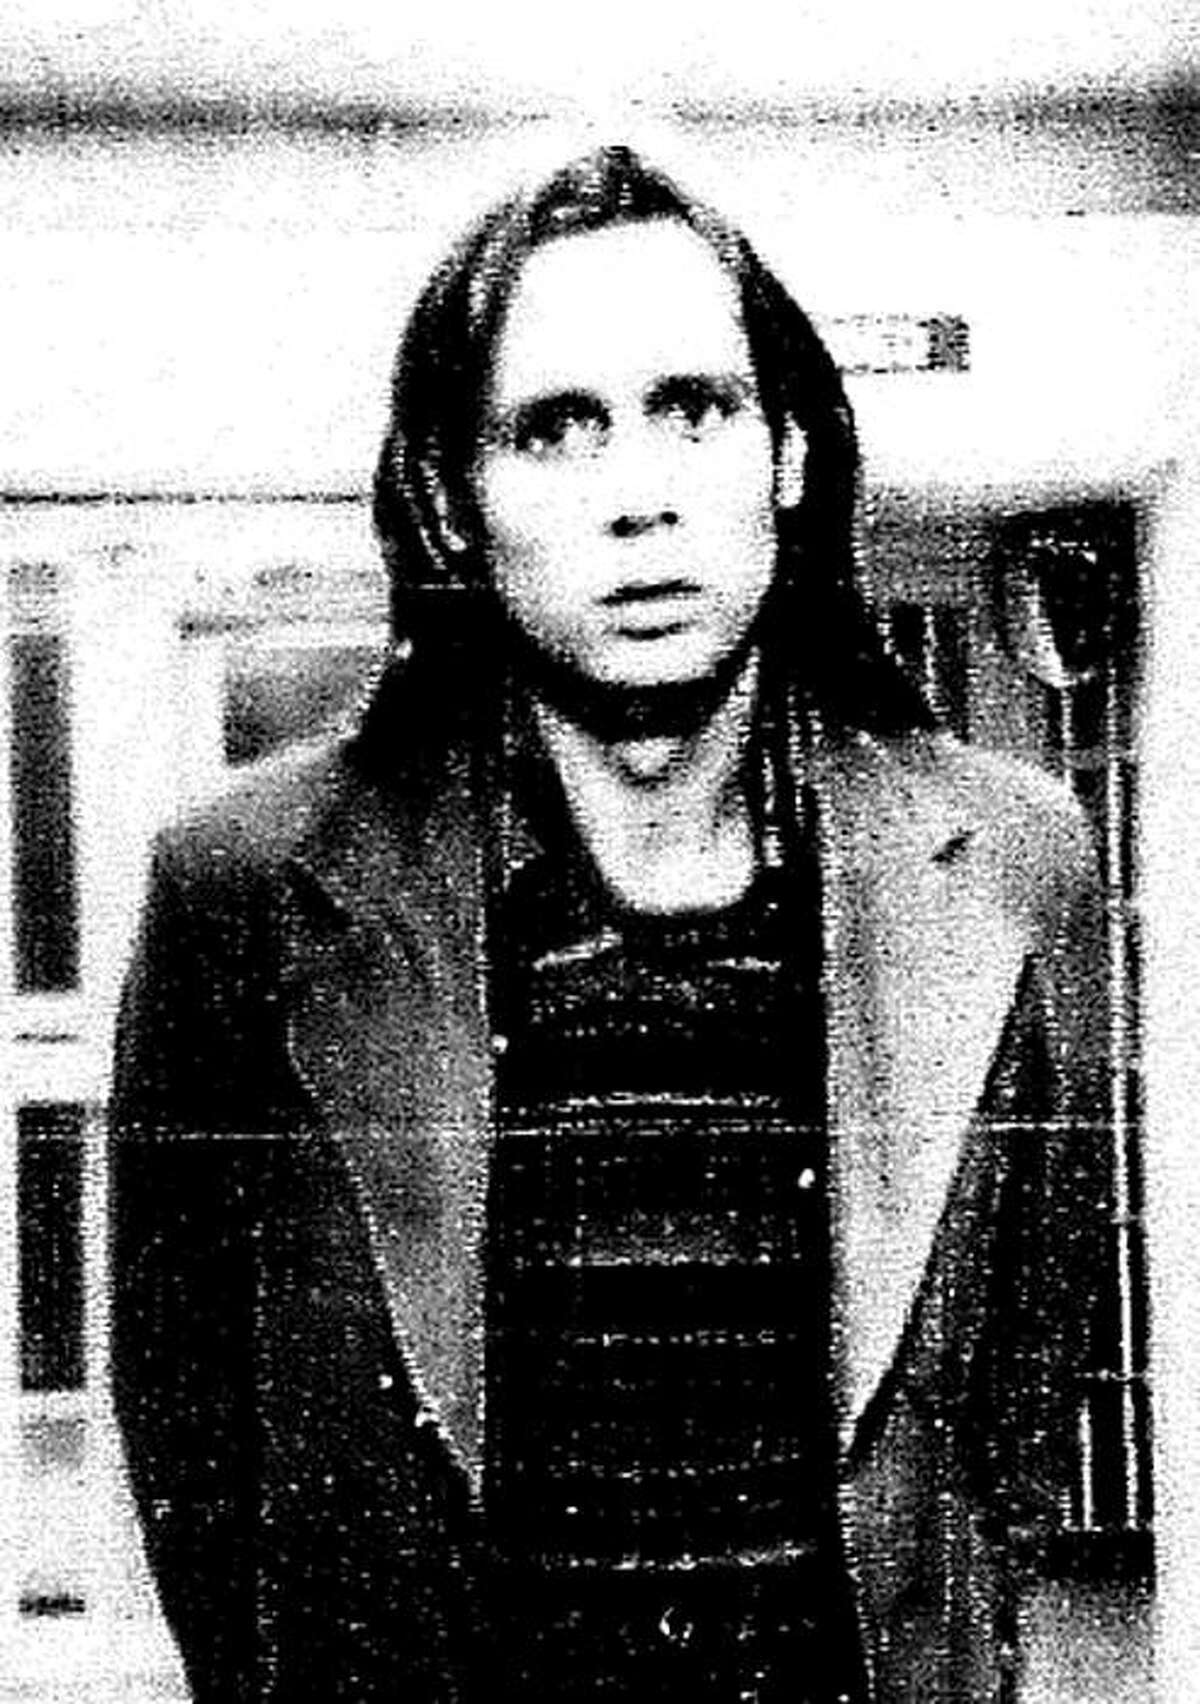 """This image provided by the Reno, Nevada Police Department shows a booking photograph of Phillip Garrido after his arrest Nov. 23, 1976 on kidnapping and rape charges. A Nevada woman, Katherine """"Katie"""" Callaway Hall, who was abducted and raped in 1976 by Garrido said Thursday Sept. 3, 2009 she believes he deserves the death penalty, although his crimes wouldn't qualify him. (AP Photo/Reno Police Department)"""